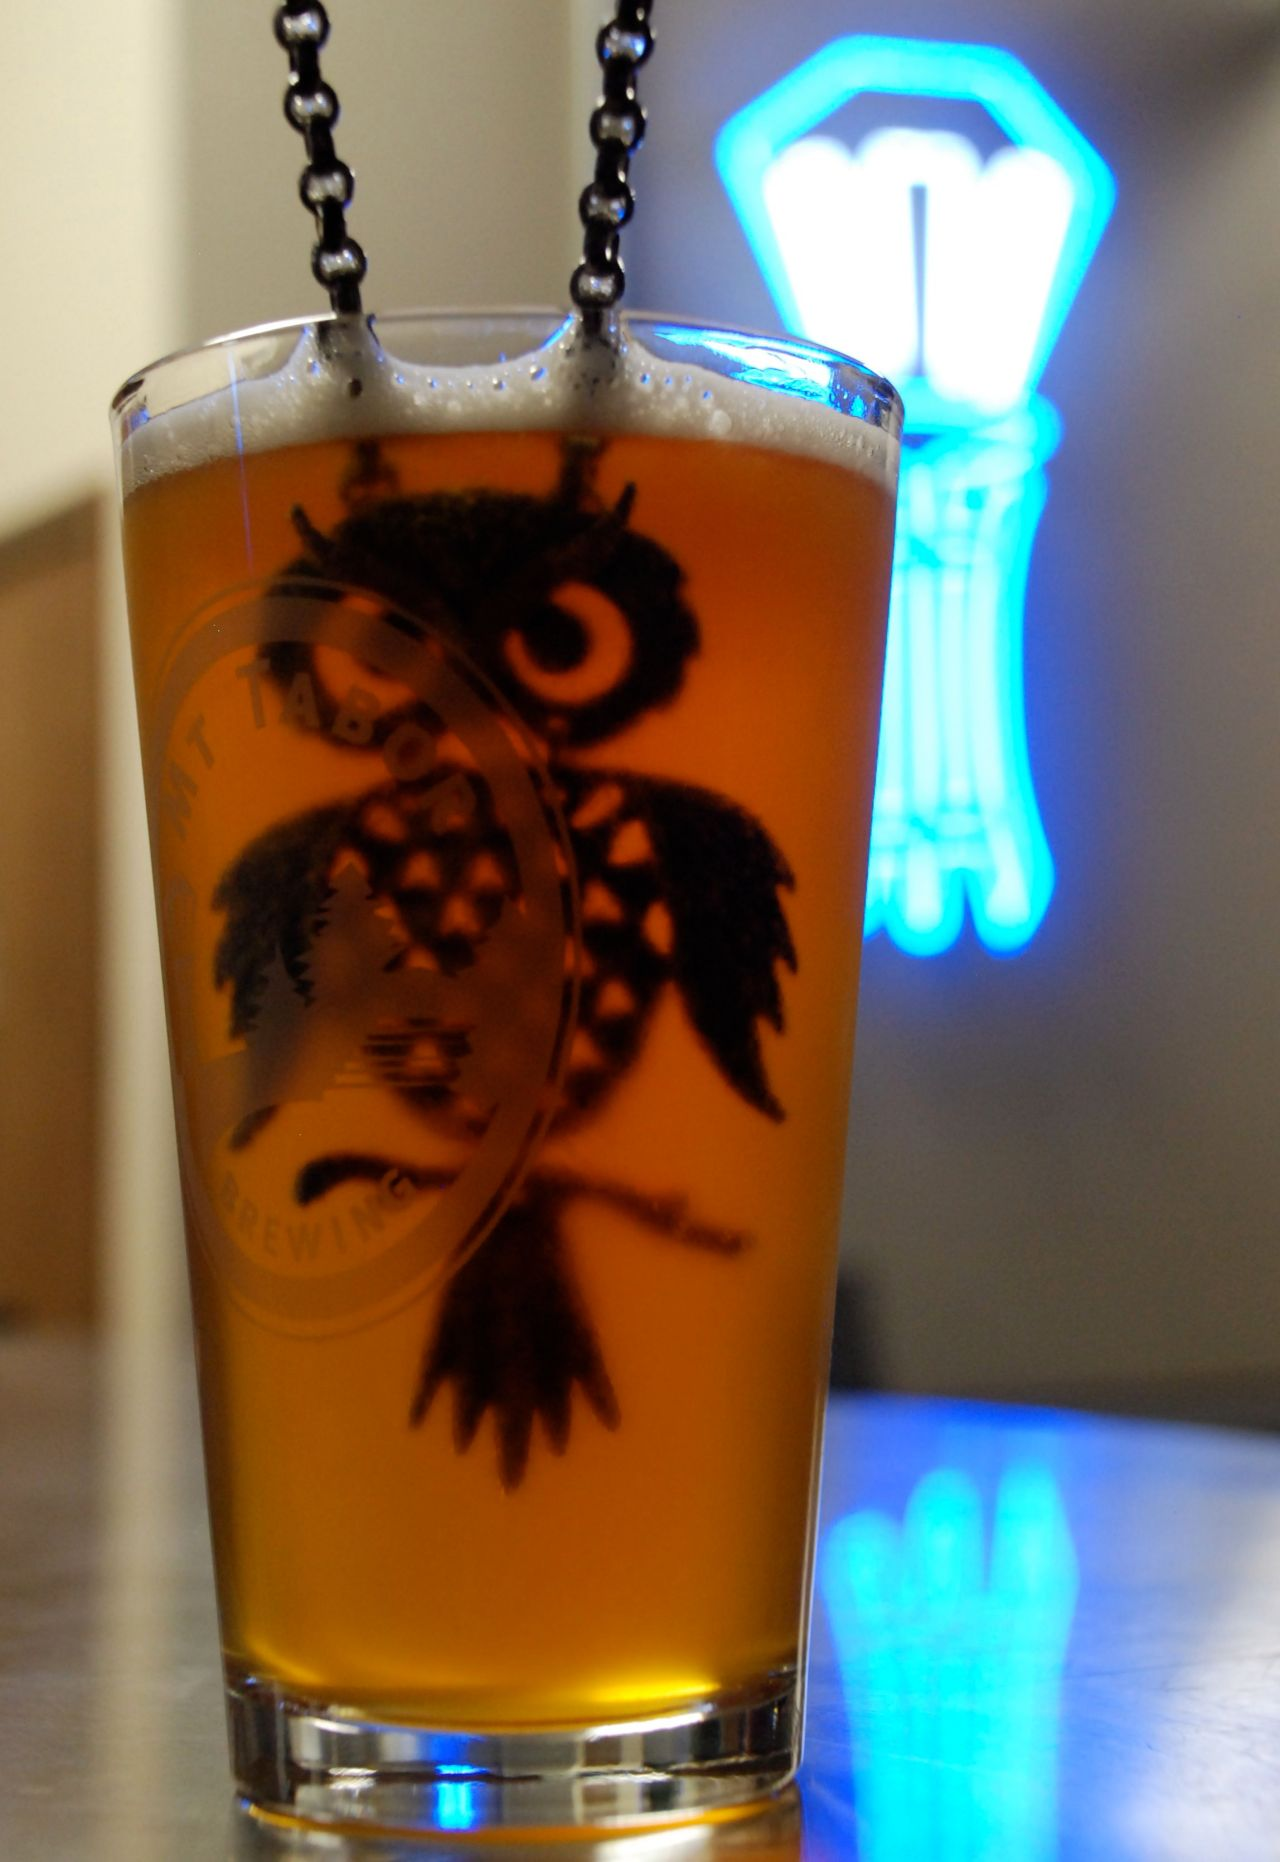 Owls like FREE BEER! How about you?